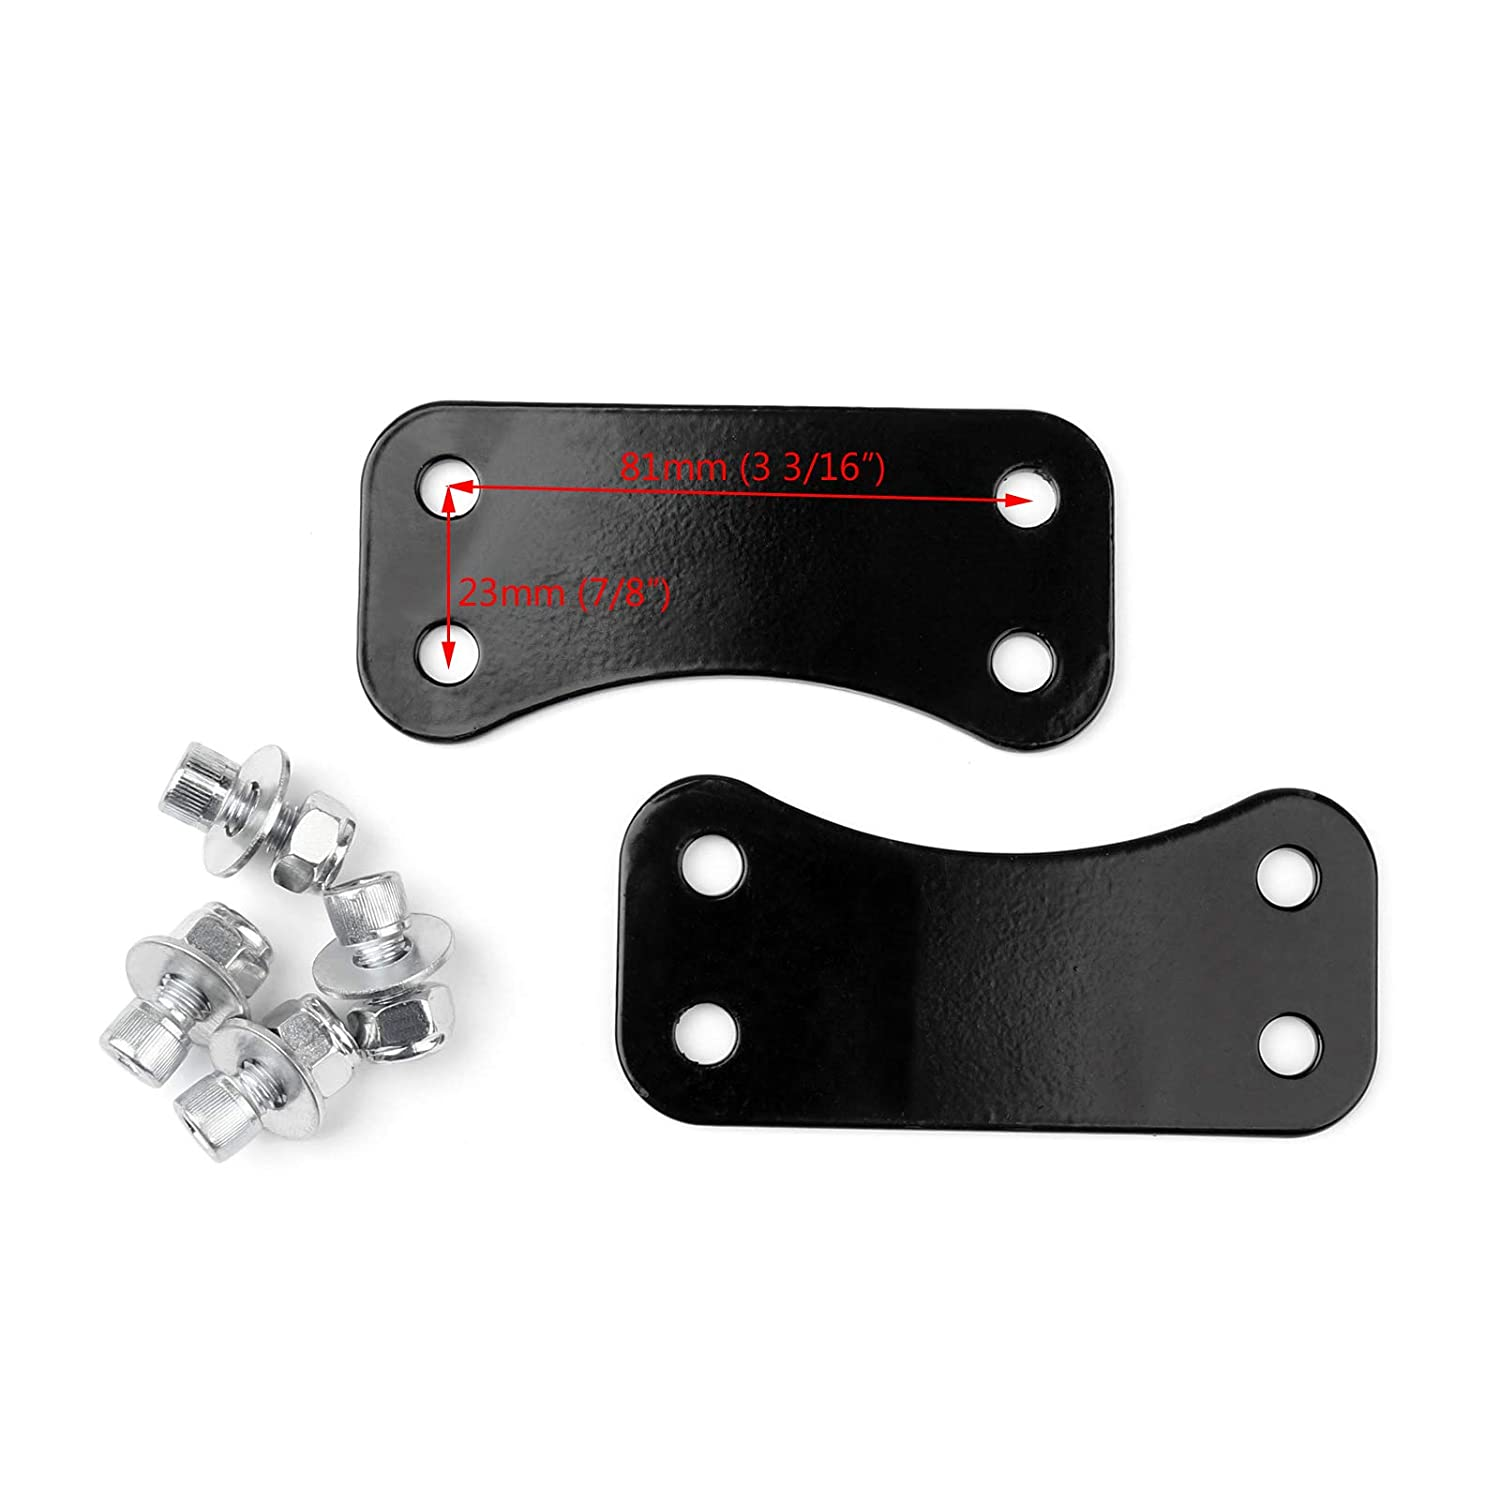 Artudatech Steel Front Fender Lift Brackets Adapters For 21 Wheel Harley Touring 2014-2017